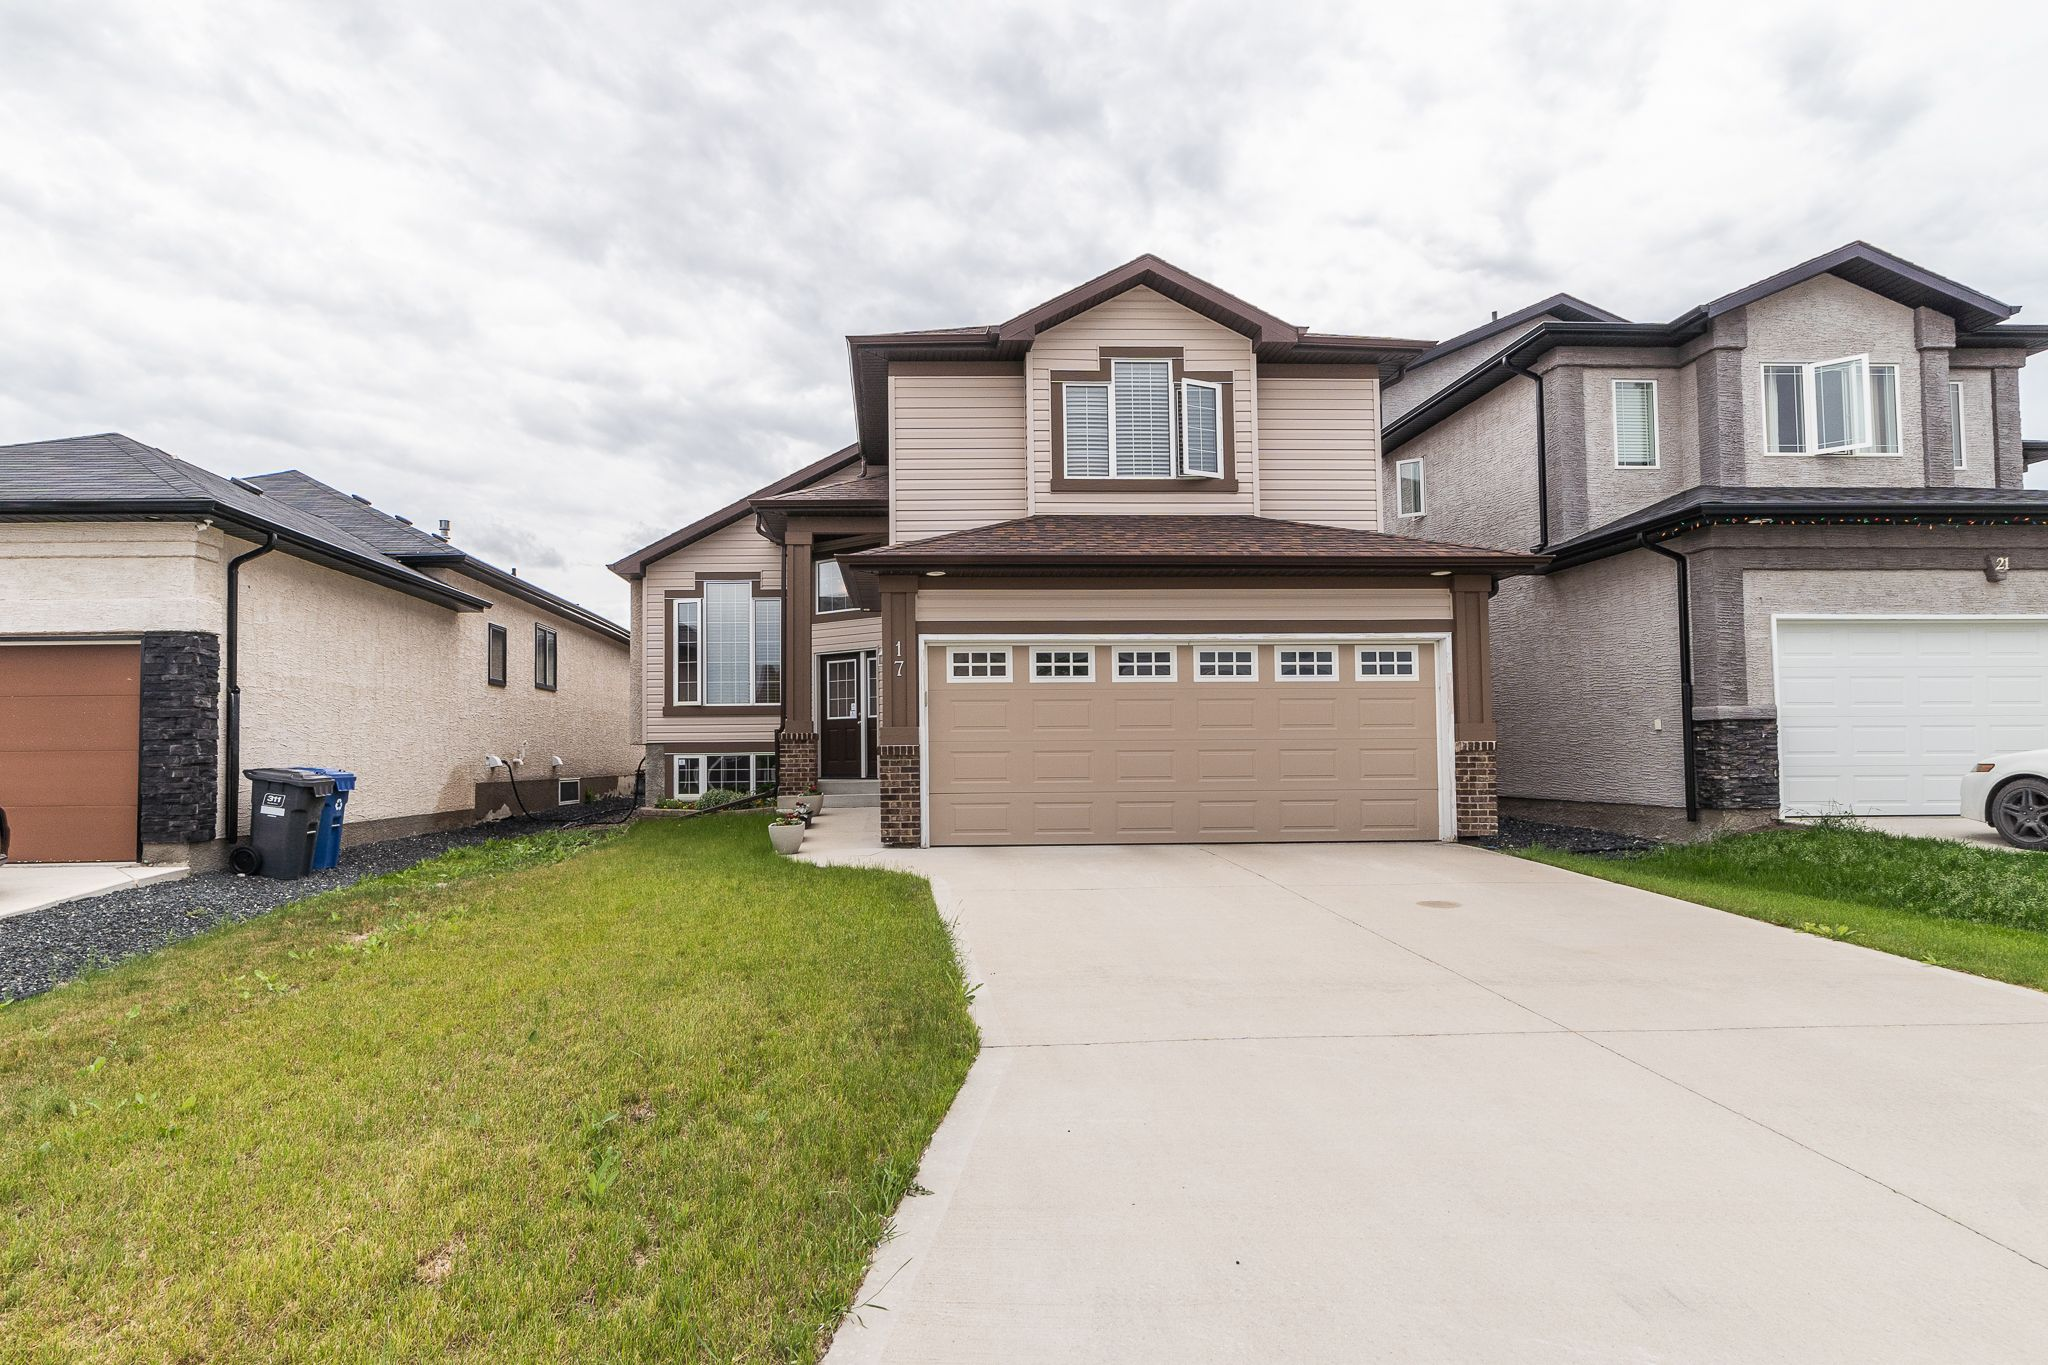 Main Photo: 17 Gemstone Cove in Winnipeg: Single Family Detached for sale (4F)  : MLS®# 1917142